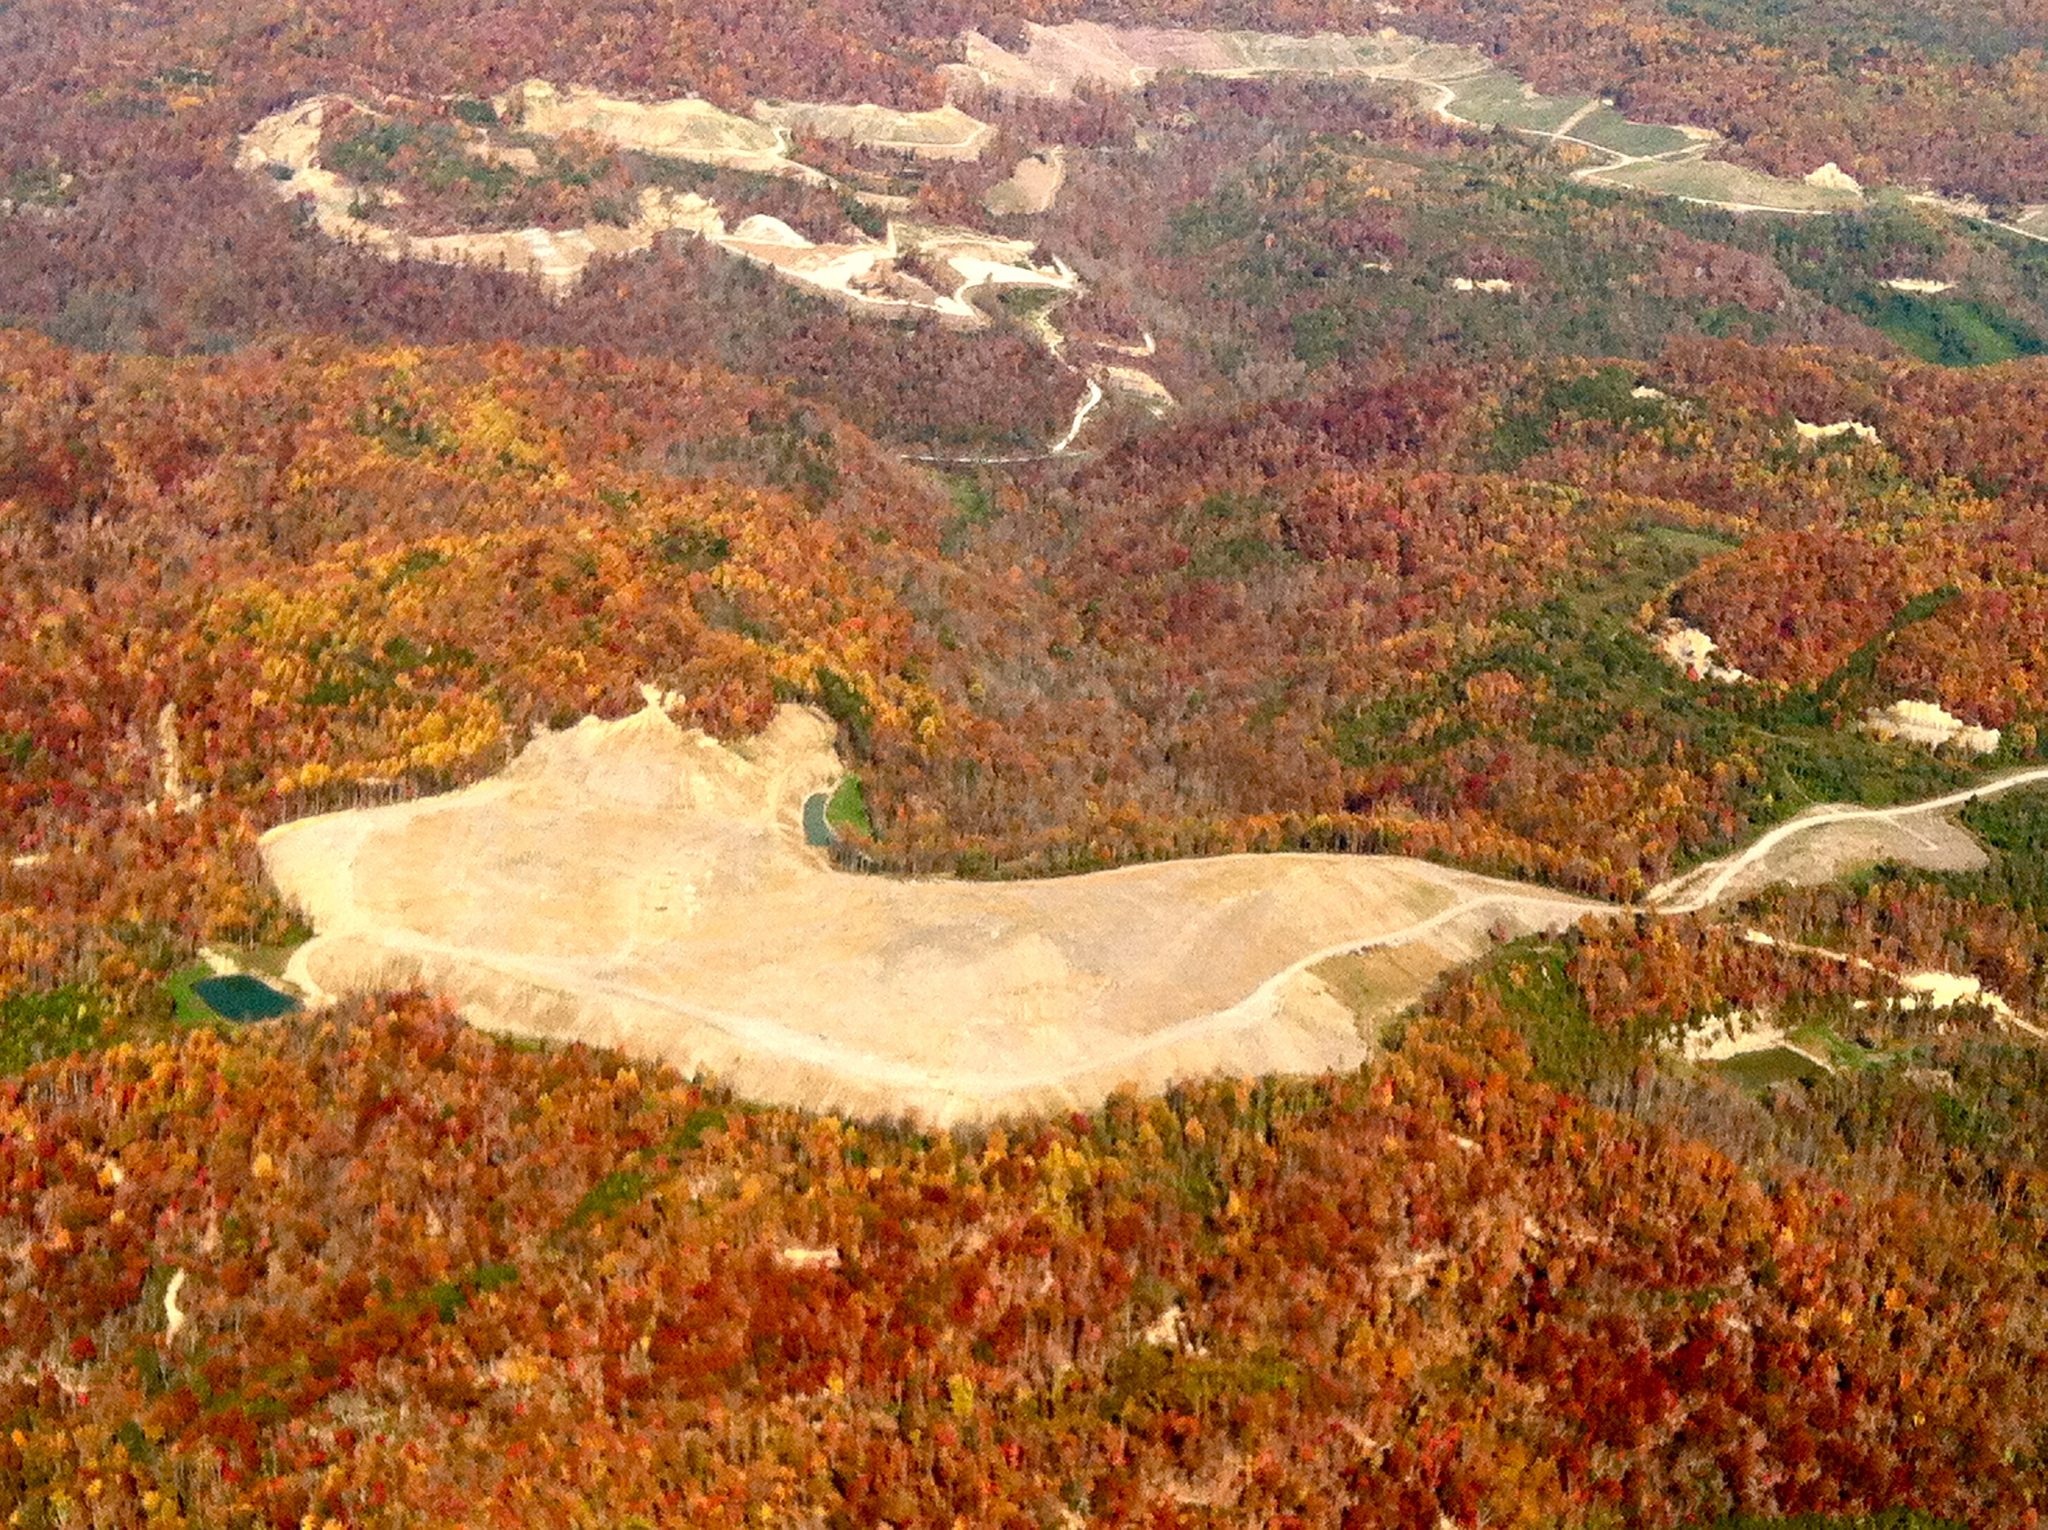 A former surface mining site in Tennessee. Photo taken October 2012, flight courtesy Southwings